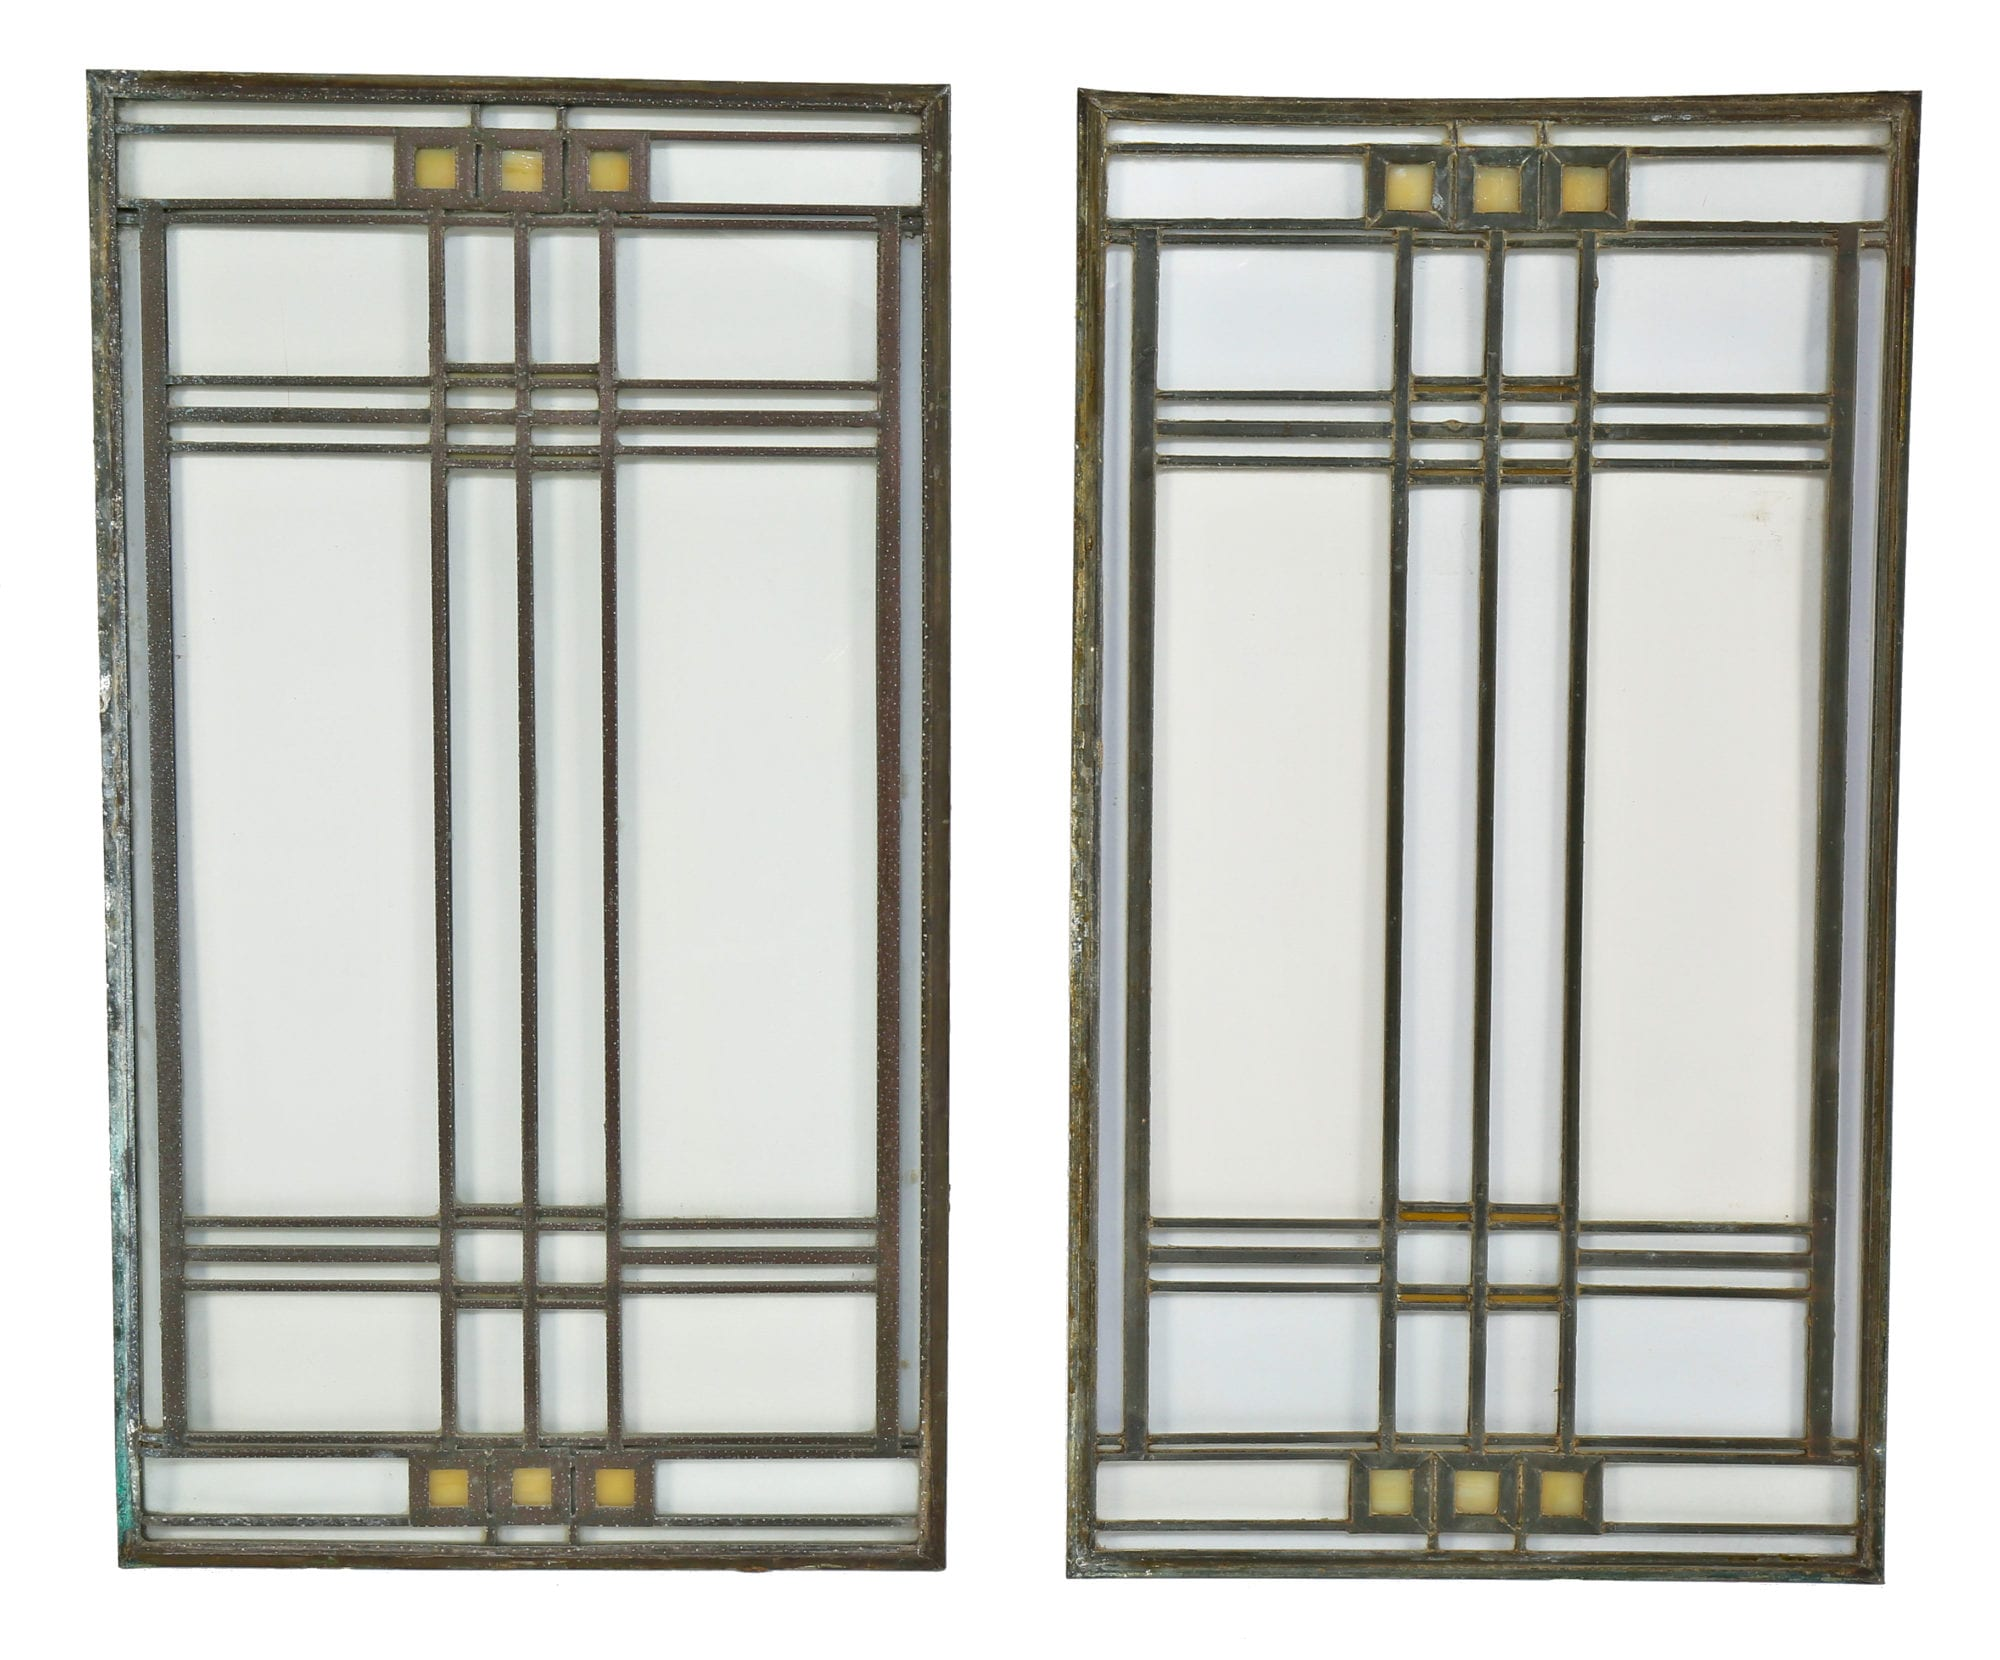 frank lloyd wright designed avery coonley residential art glass windows added to bldg 51 museum. Black Bedroom Furniture Sets. Home Design Ideas